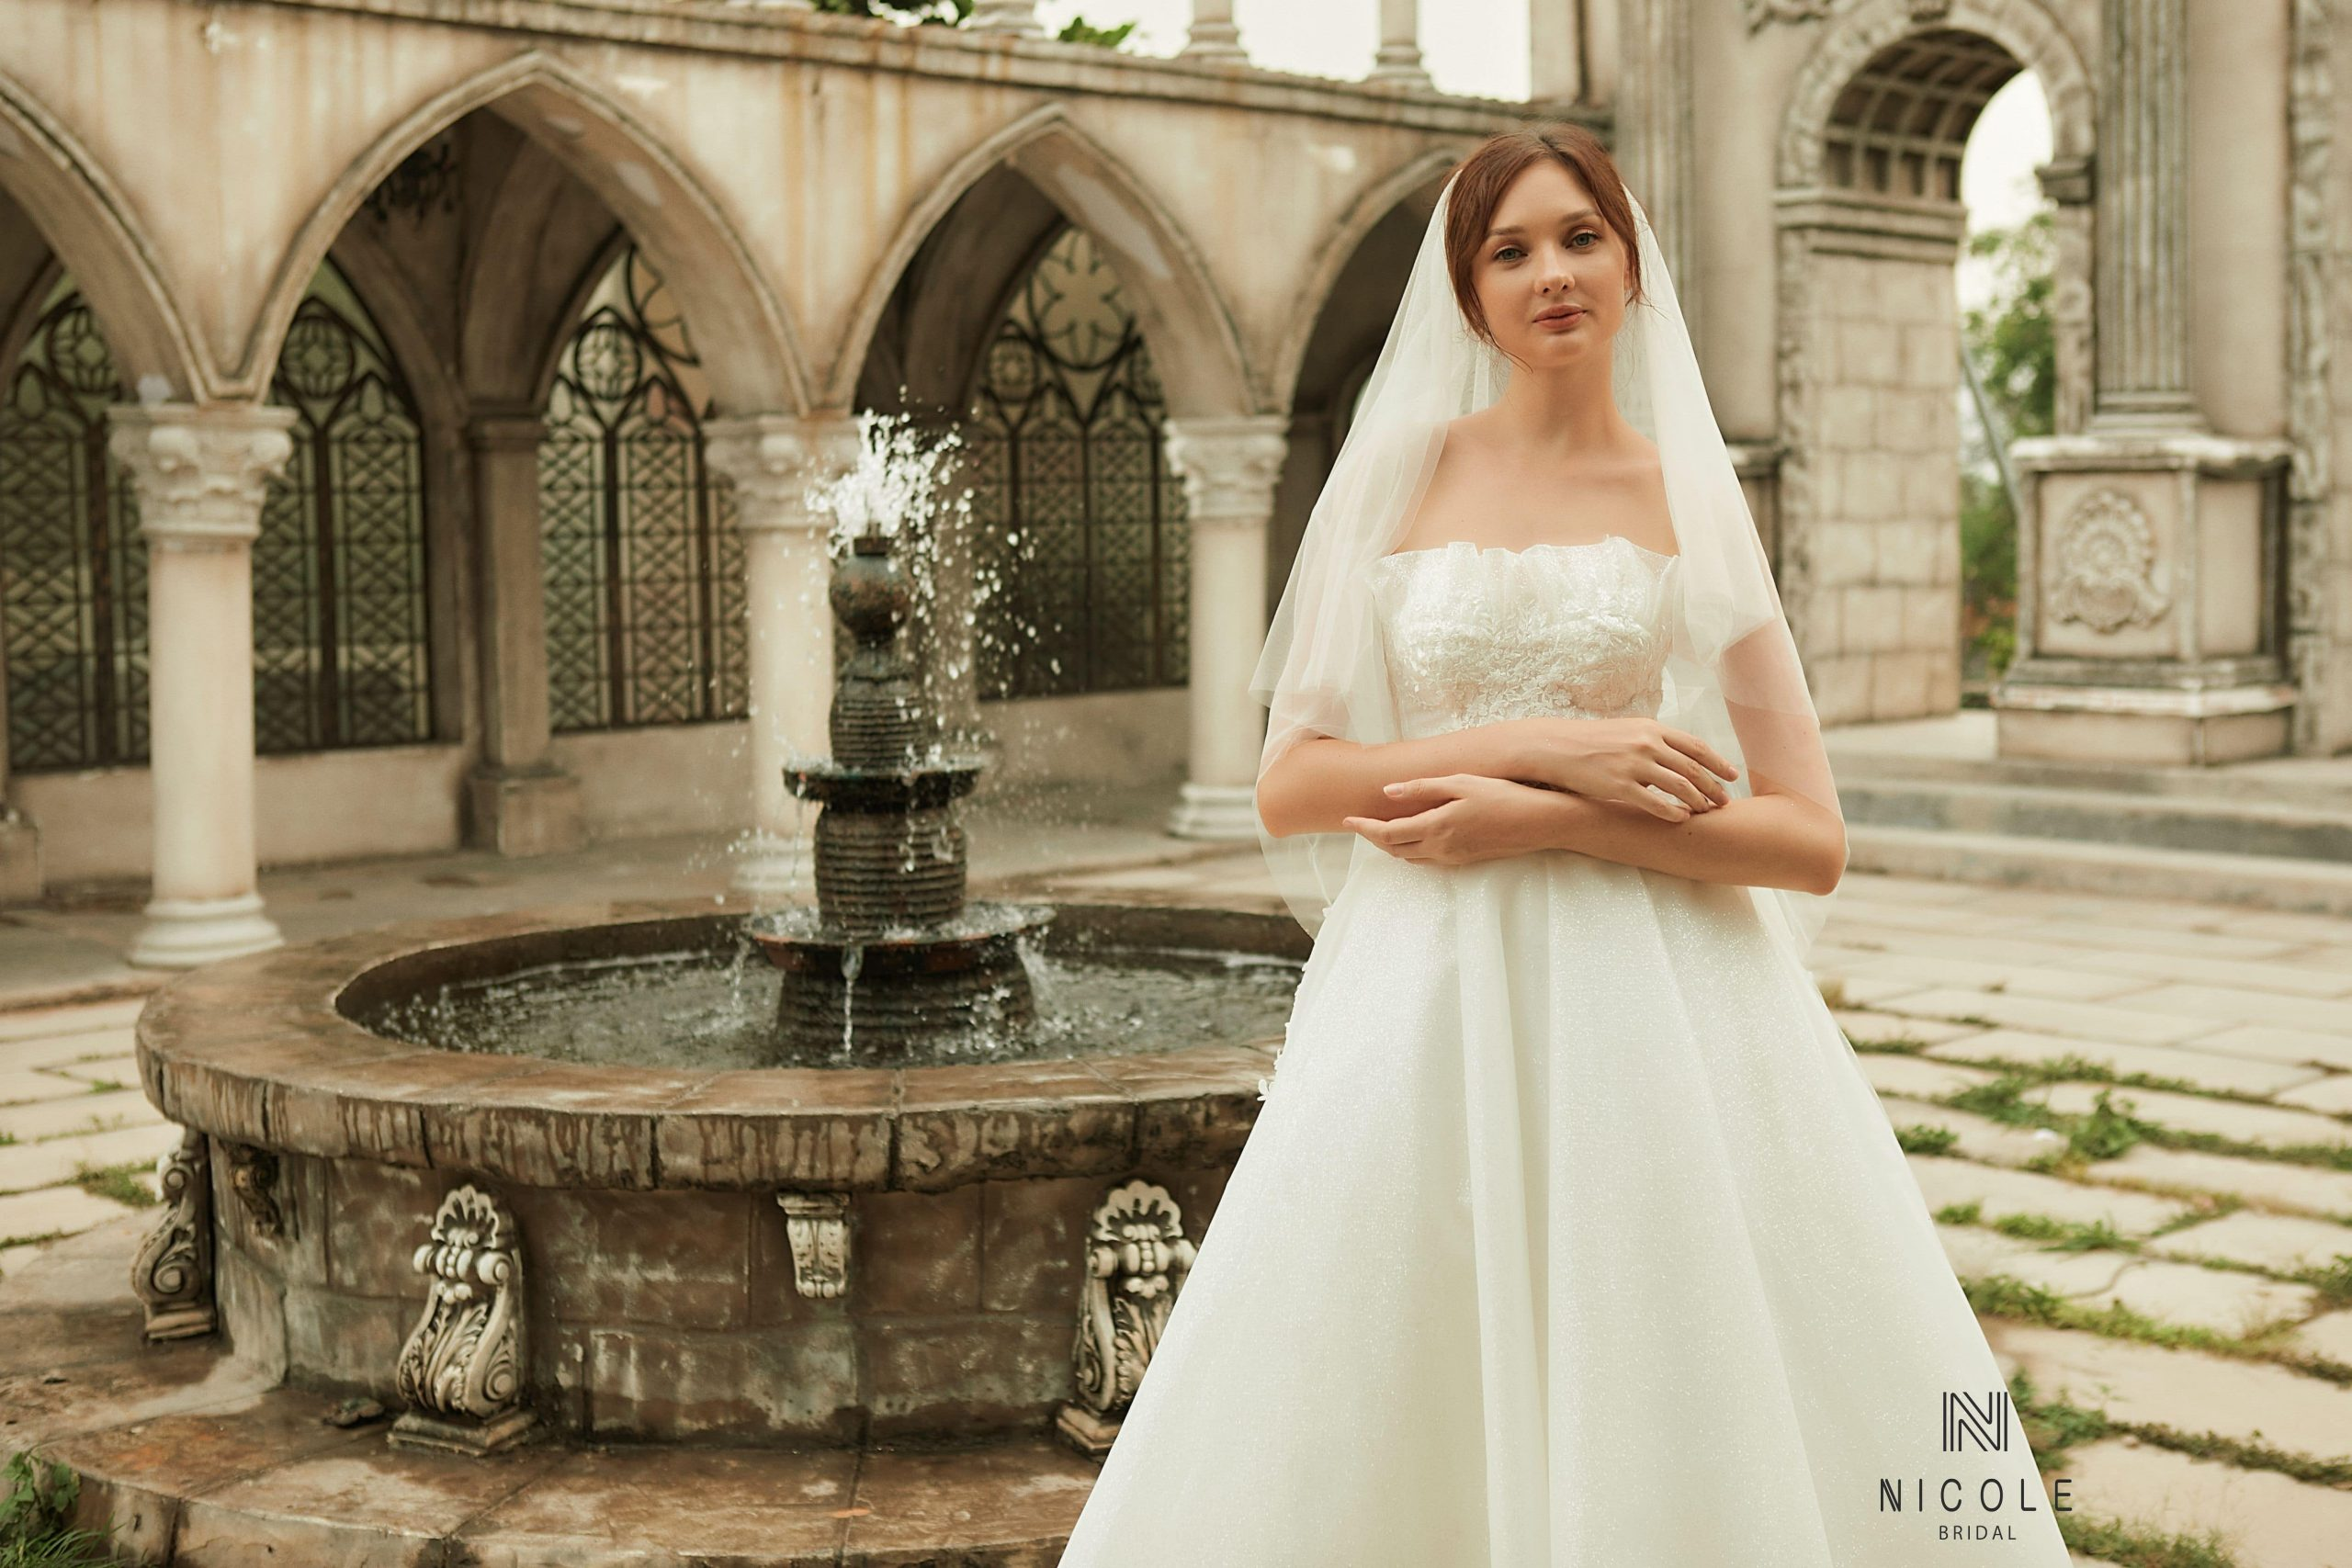 20 tips for ordering a wedding dresses online 20 months or less ...